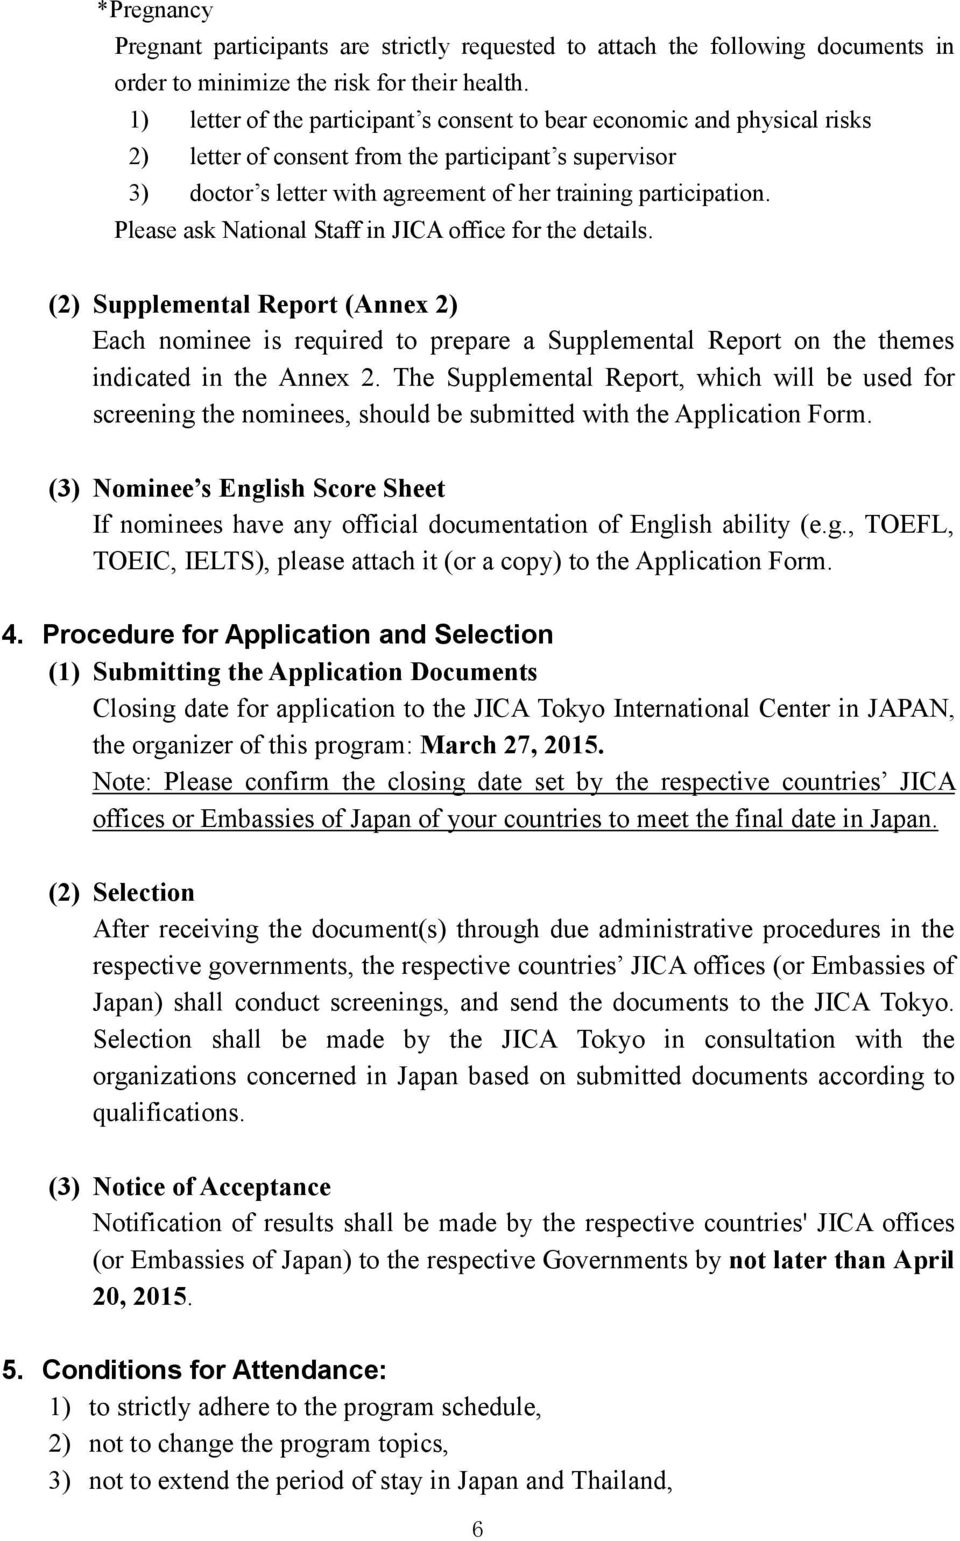 Please ask National Staff in JICA office for the details. (2) Supplemental Report (Annex 2) Each nominee is required to prepare a Supplemental Report on the themes indicated in the Annex 2.